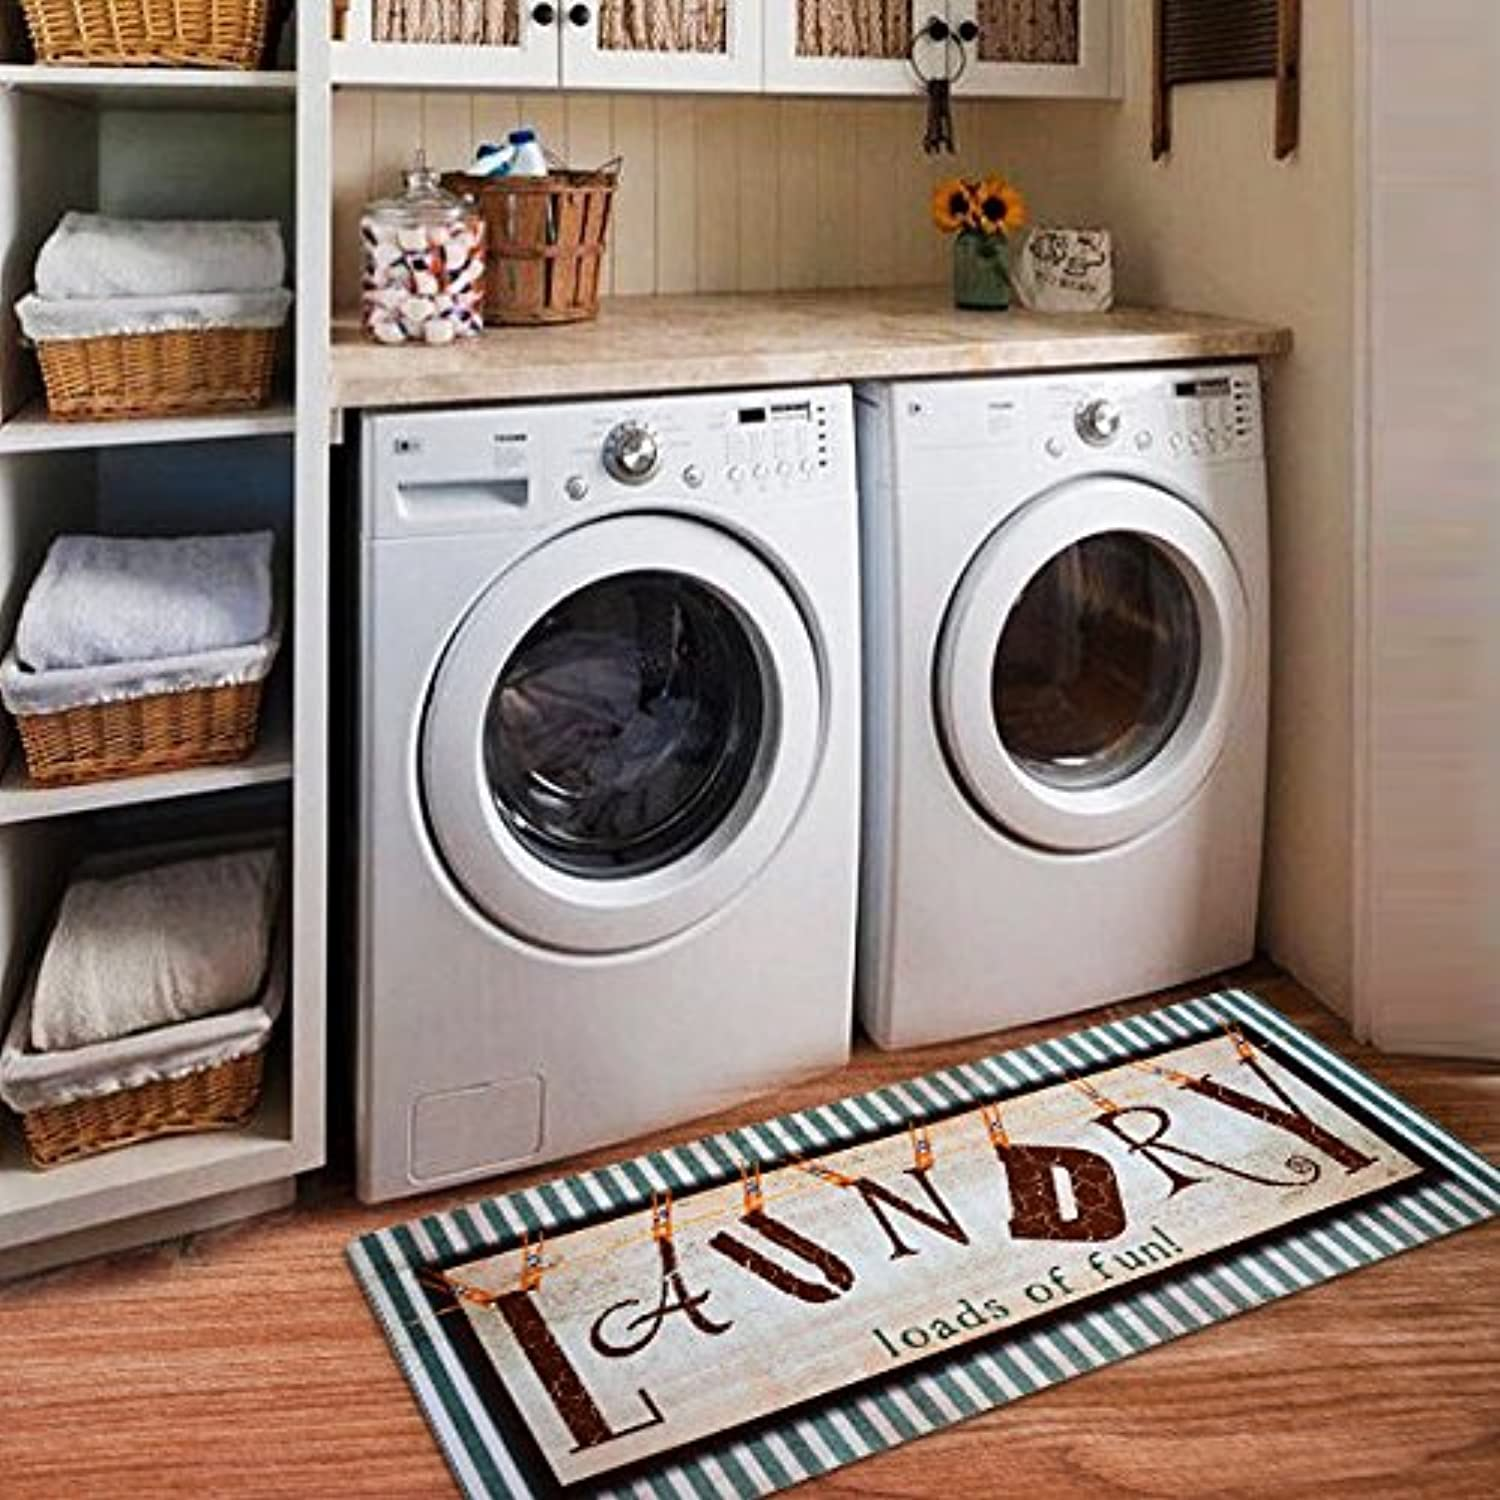 Brandream Vintage Laundry Room Floor Rugs Durable Washhouse Mat Non-Slip Doormat Kitchen Rug 20x48 Ideas